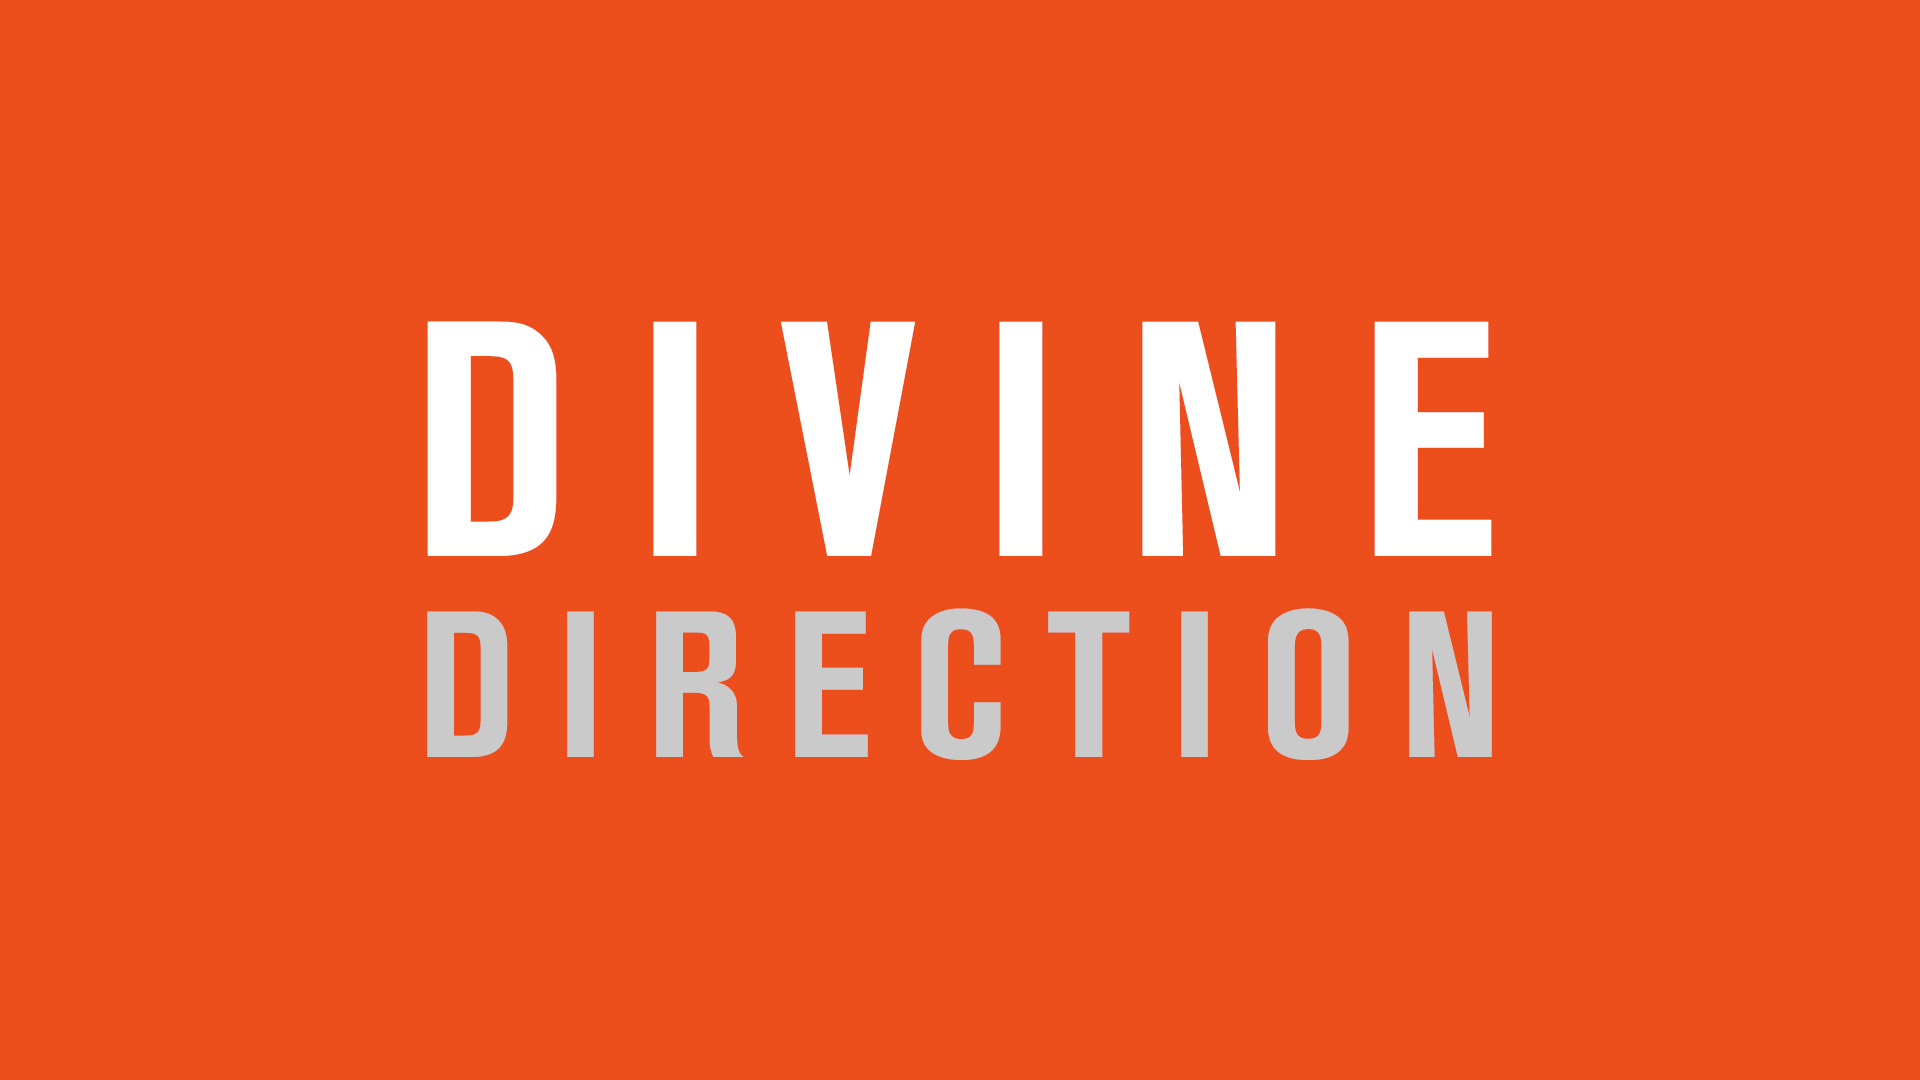 Divine_Direction_Art.jpg